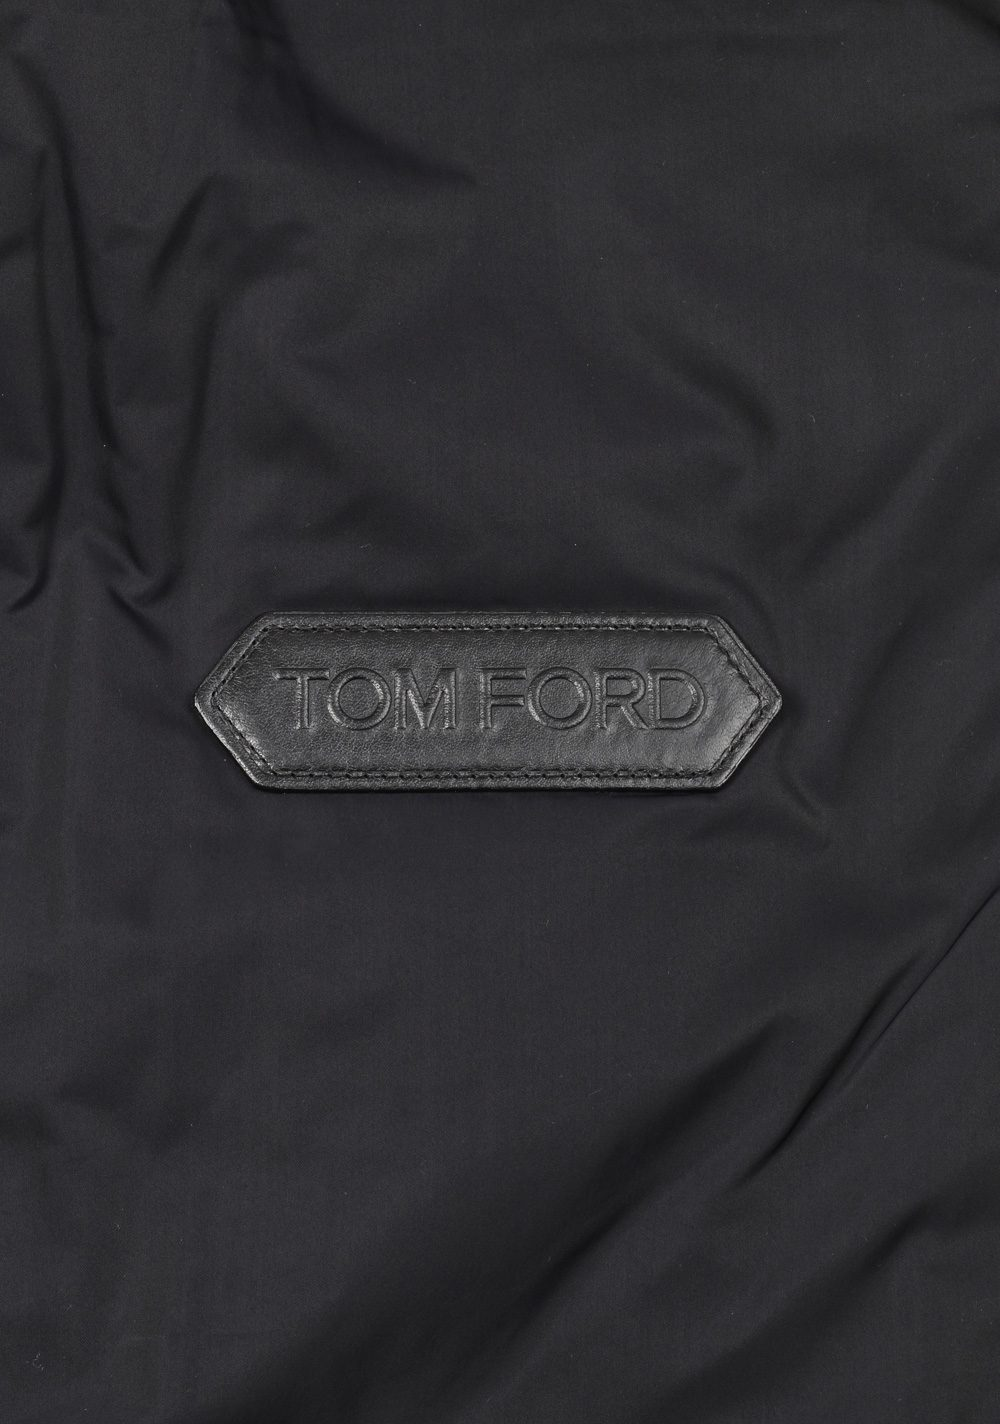 TOM FORD Blue James Bond Spectre Bomber Jacket | Costume Limité